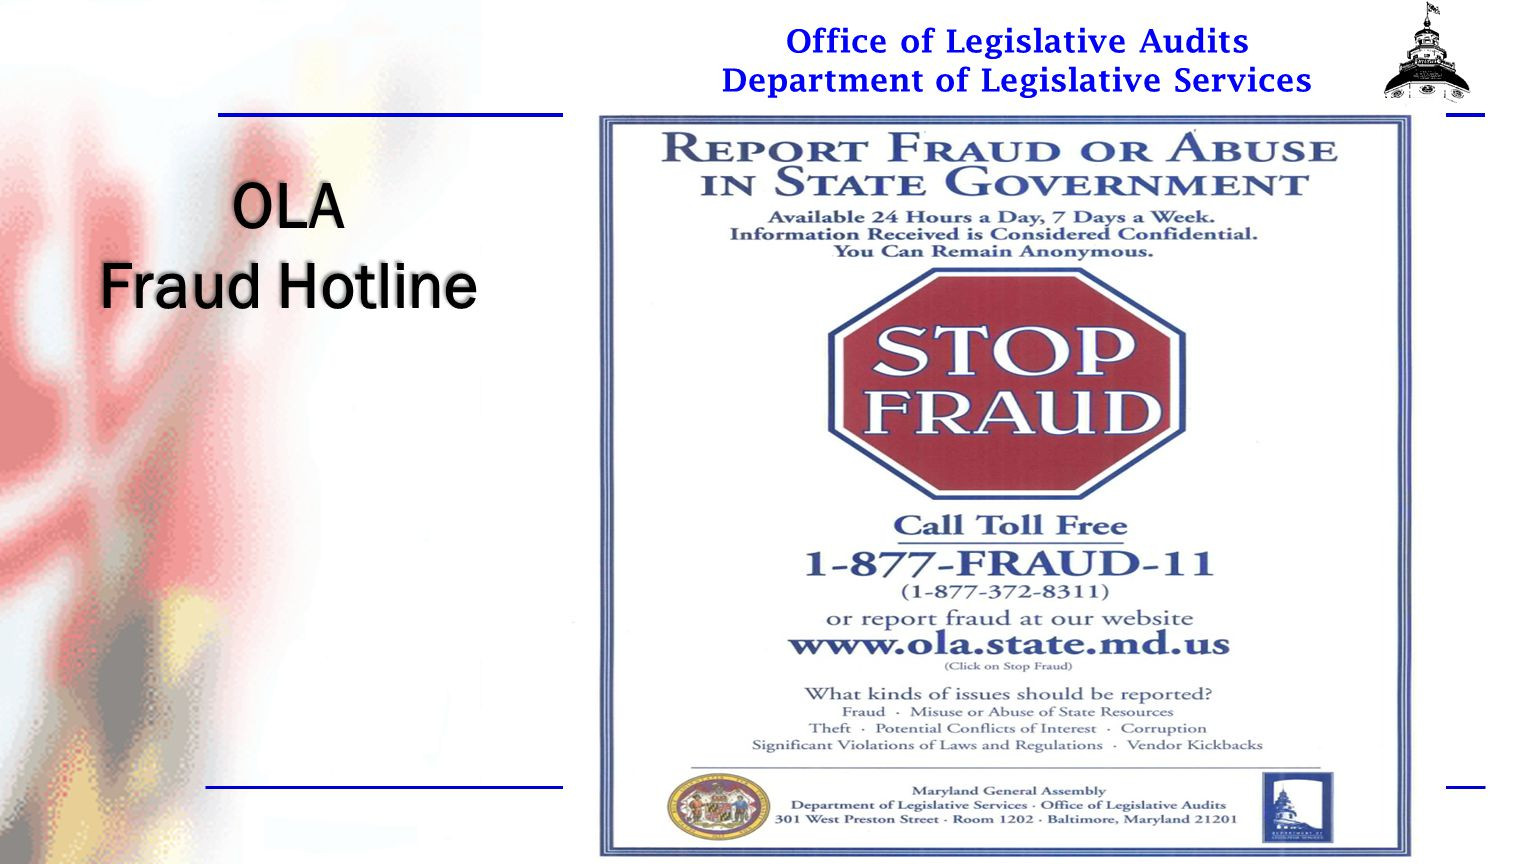 Office of Legislative Audits Department of Legislative Services Report Statistics On average, 80 to 90 audit reports issued annually Consisting of approximately 280 individual findings Reports are public and available via http://www.ola.state.md.us http://www.ola.state.md.us